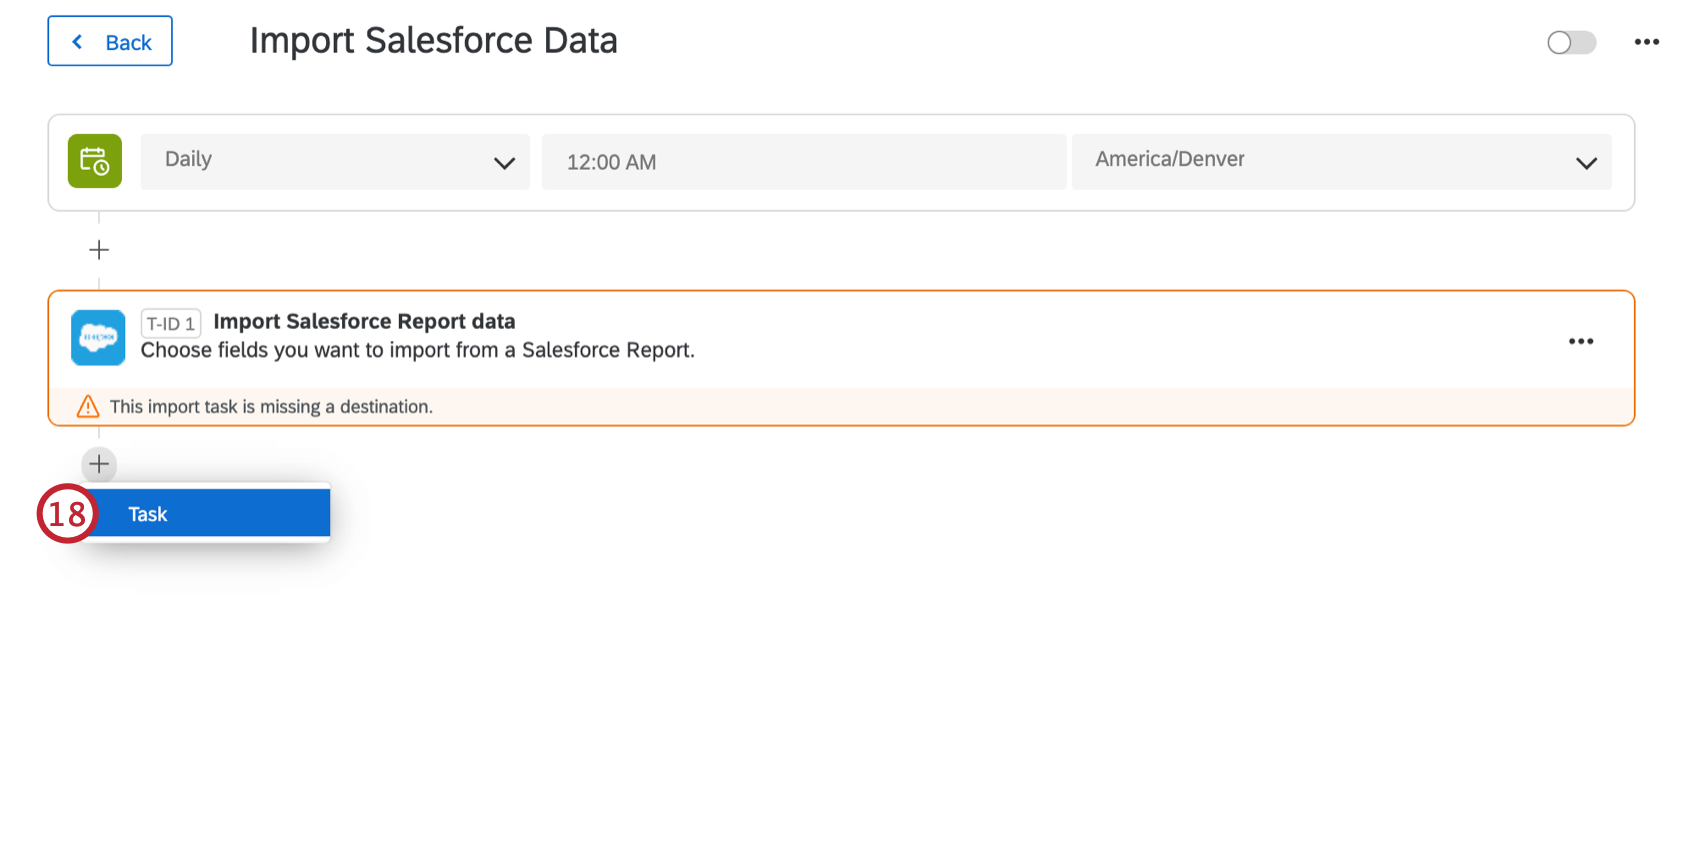 clicking task after setting up the import salesforce report data task